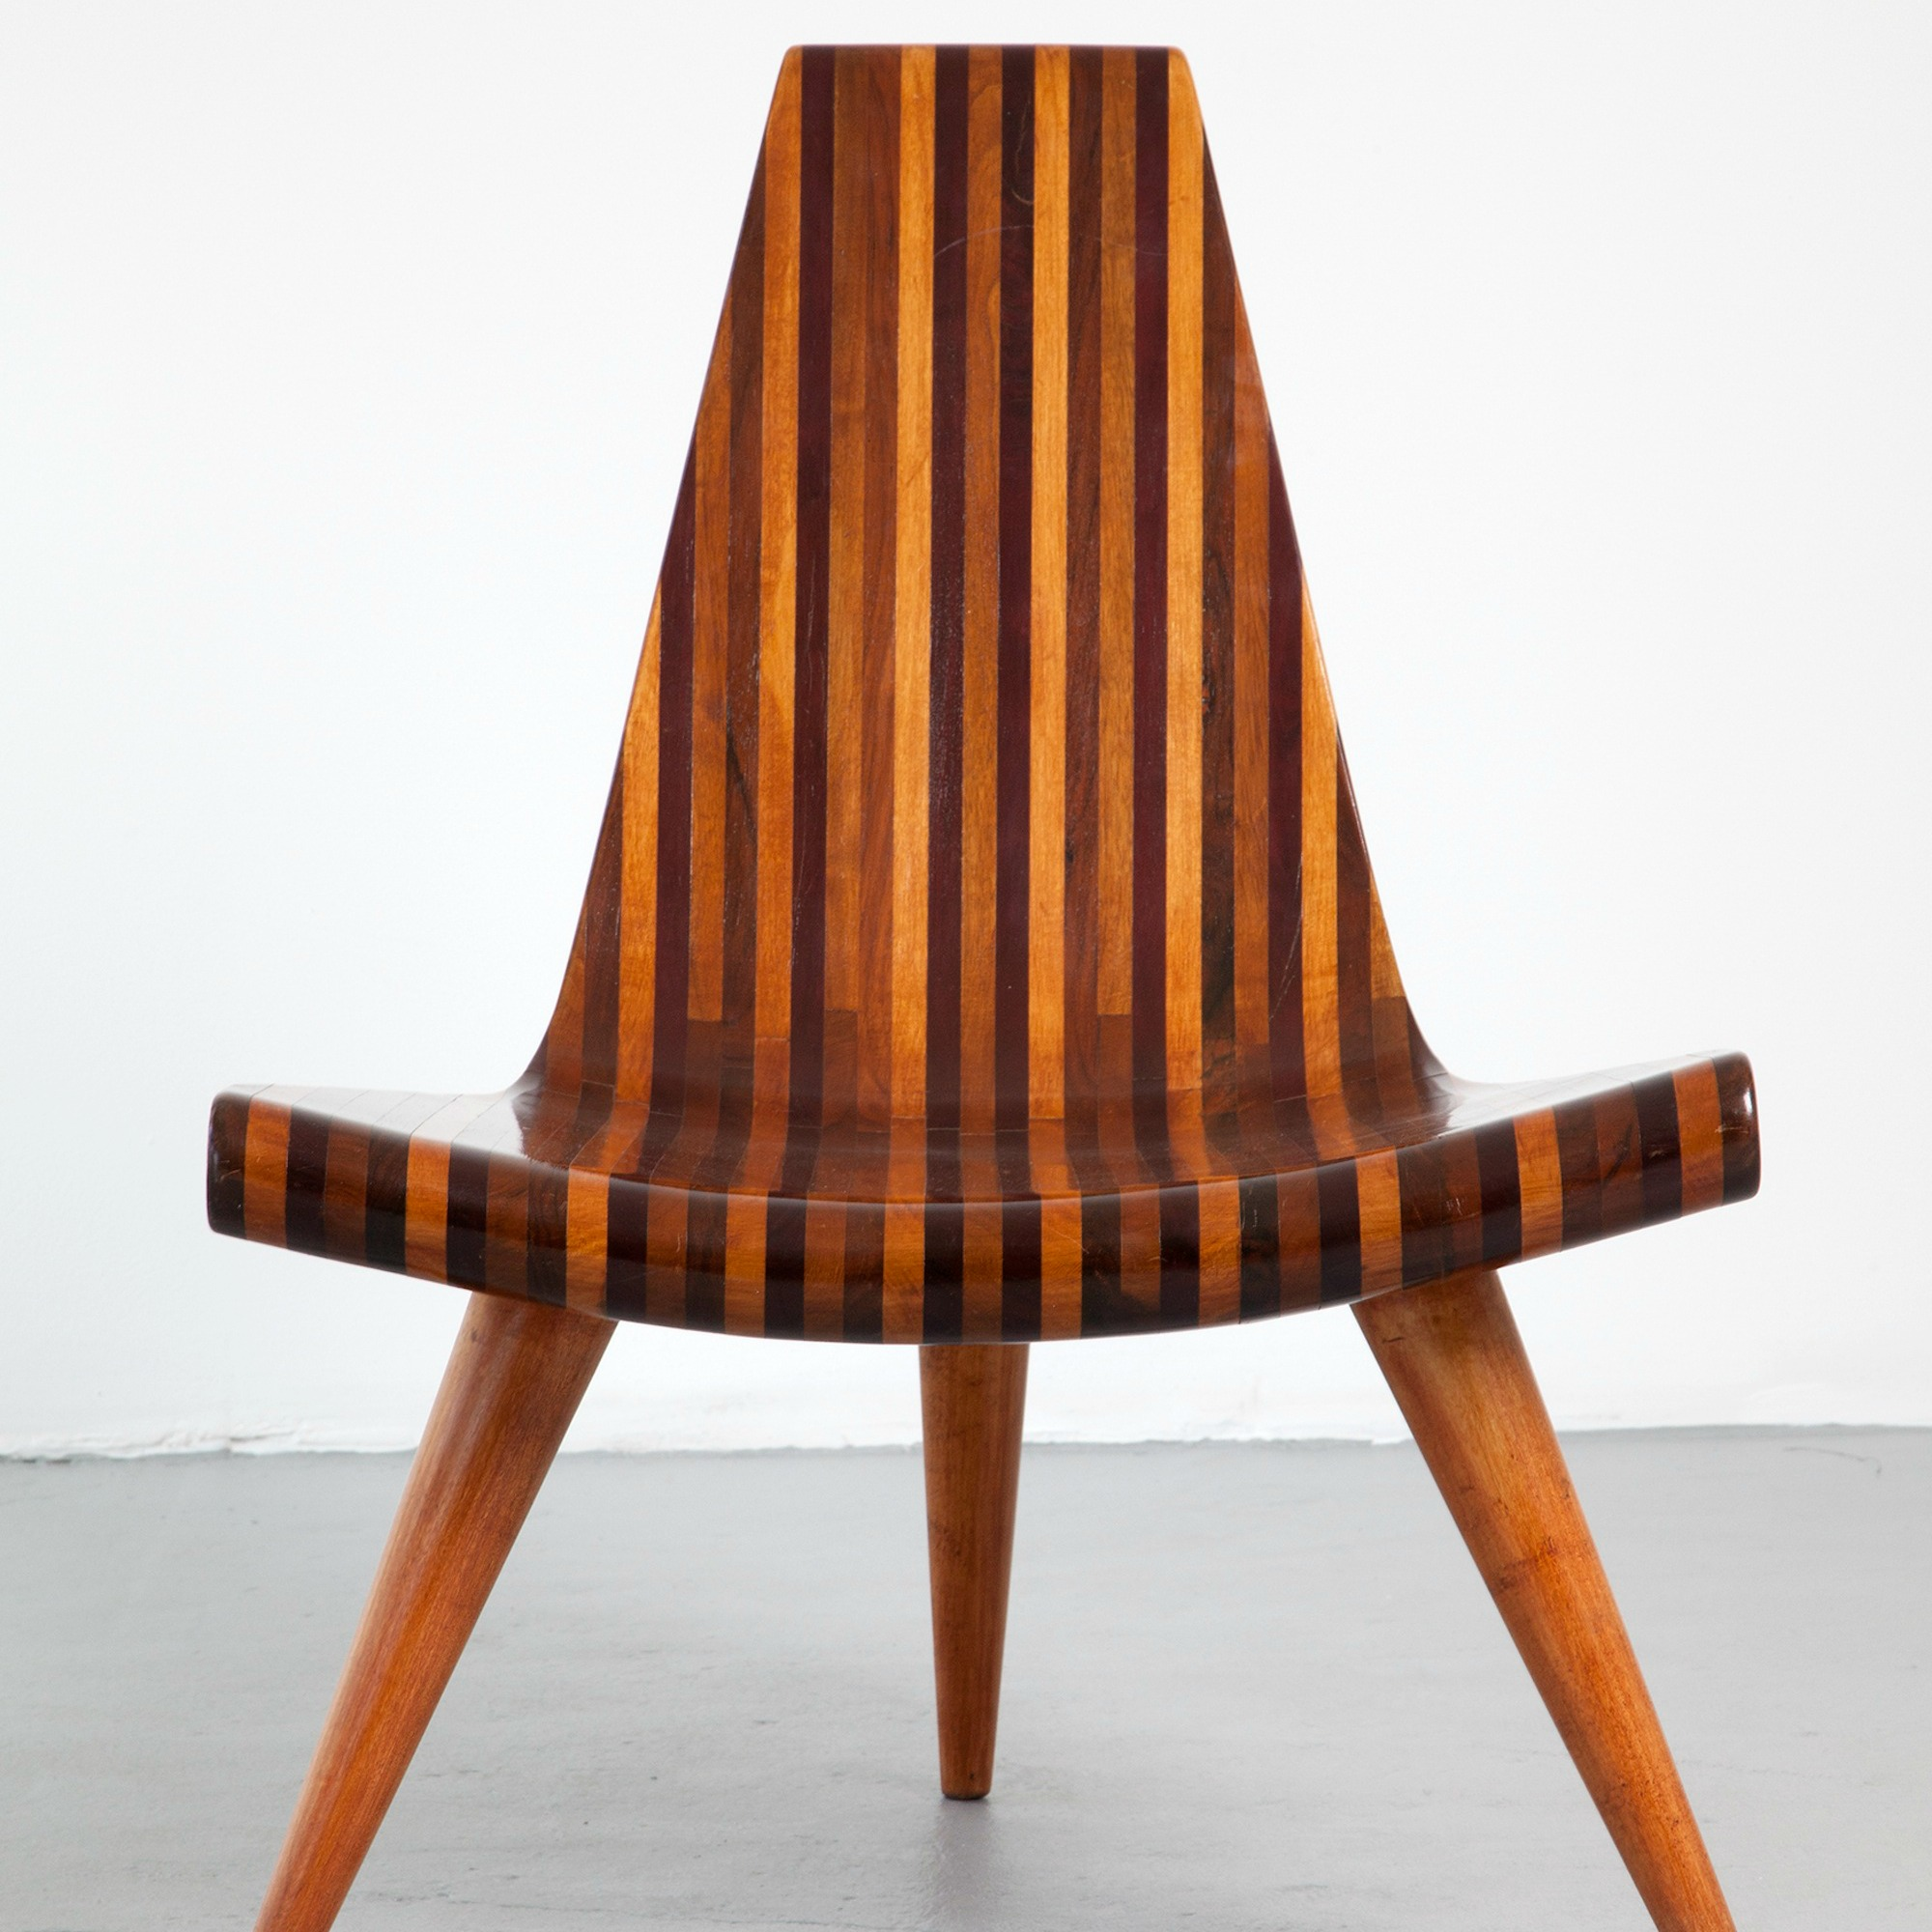 multiple stripes of natually colored wood create the back and base of a three legged chair